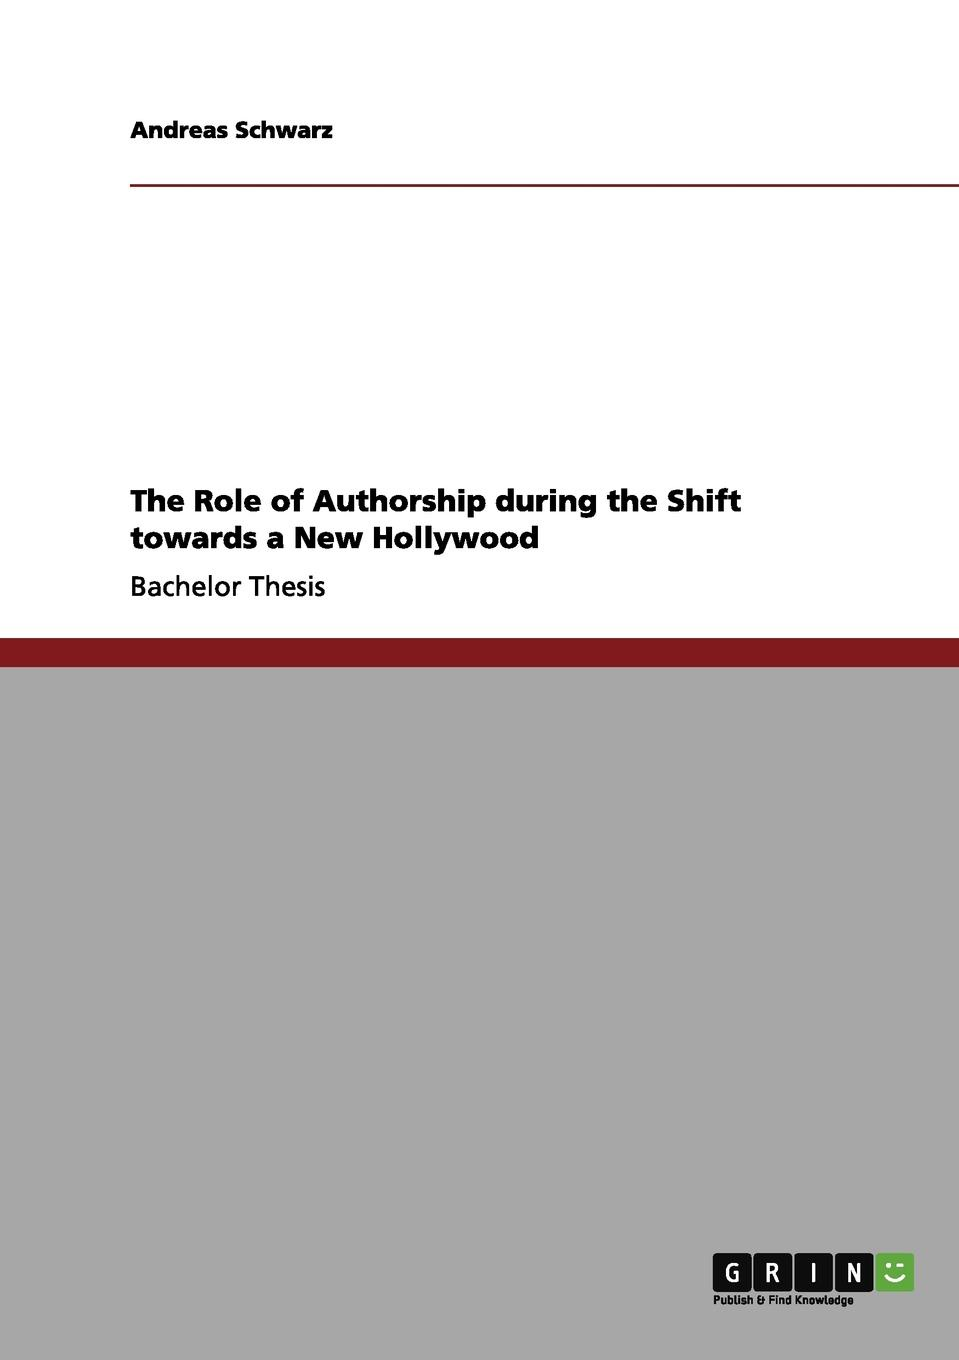 Andreas Schwarz The Role of Authorship during the Shift towards a New Hollywood robert eberwein the hollywood war film